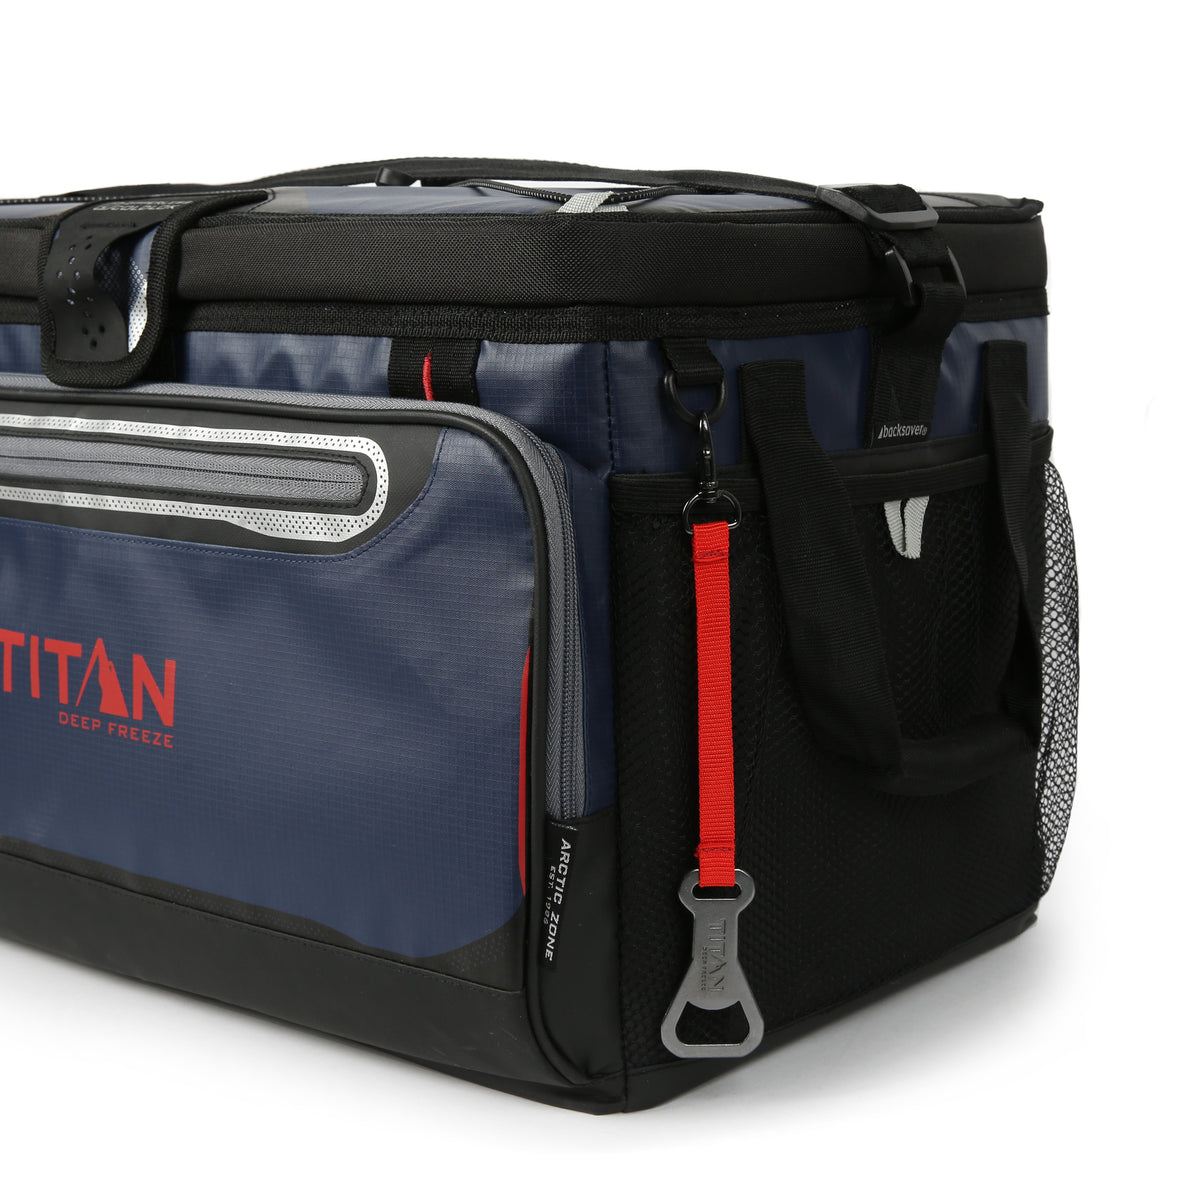 48 Can Titan Deep Freeze® Zipperless™ Cooler  - Navy - Mesh side pockets